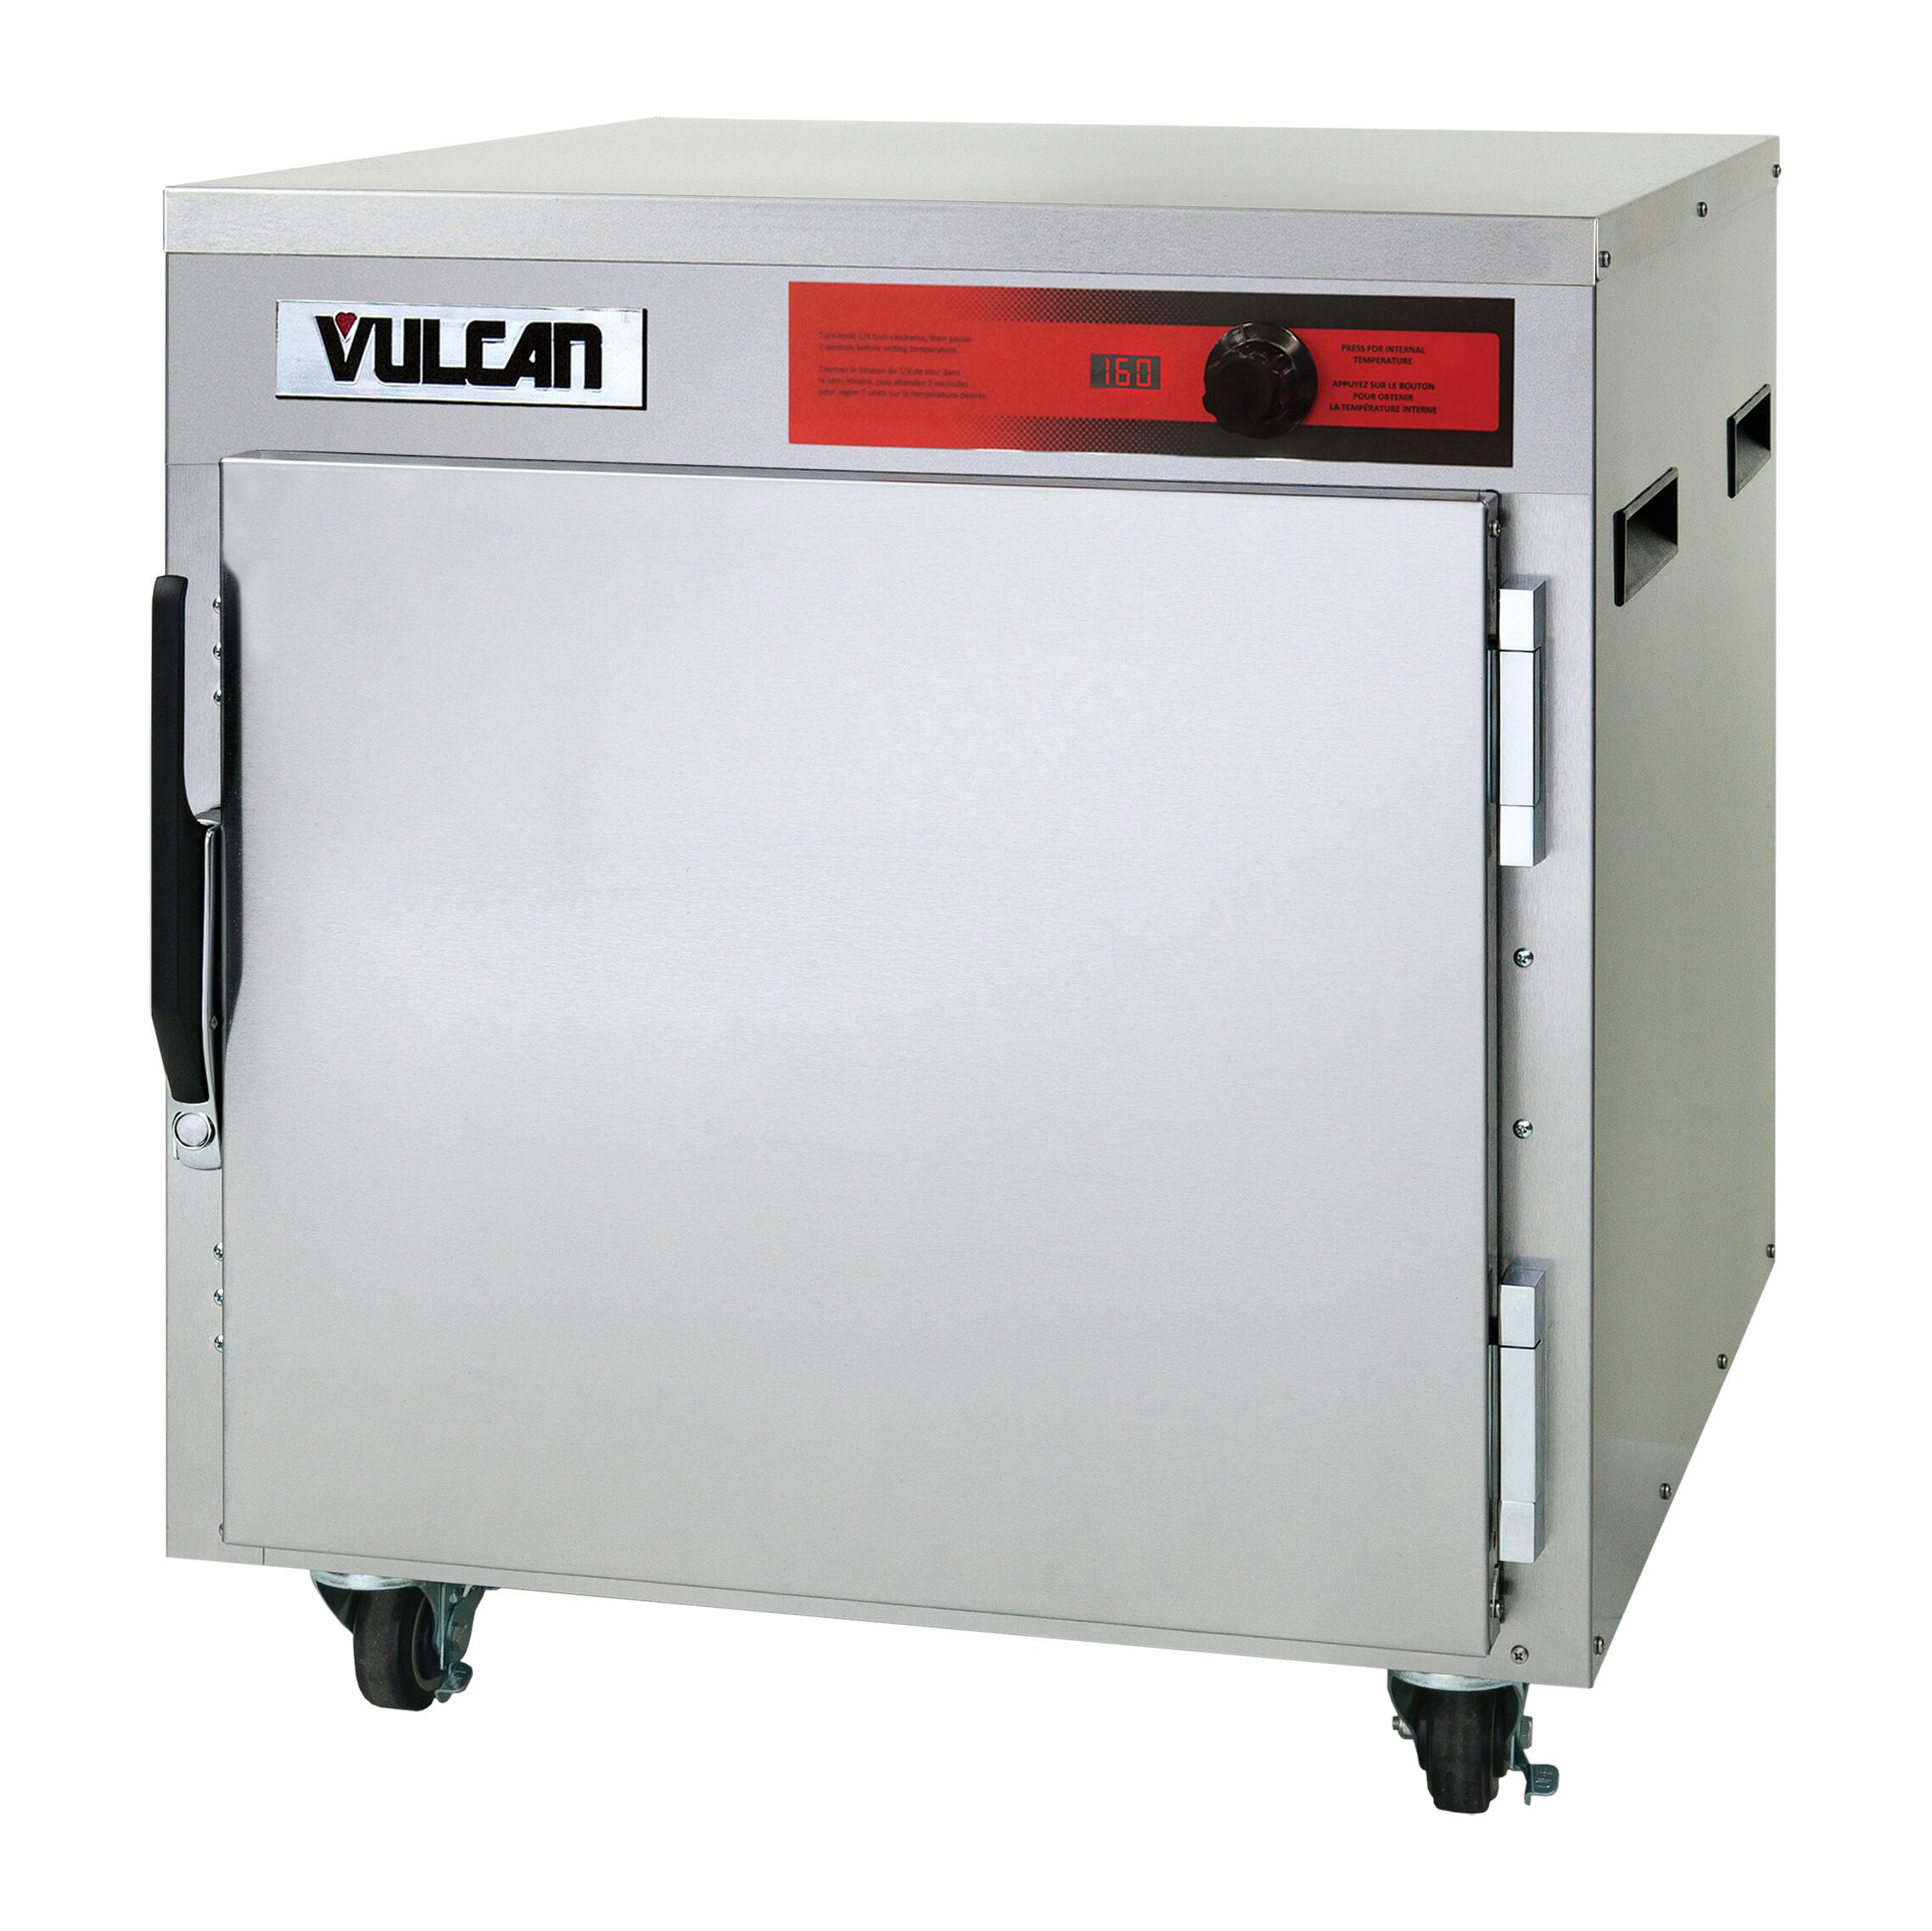 Vulcan VBP5 heated cabinet, mobile